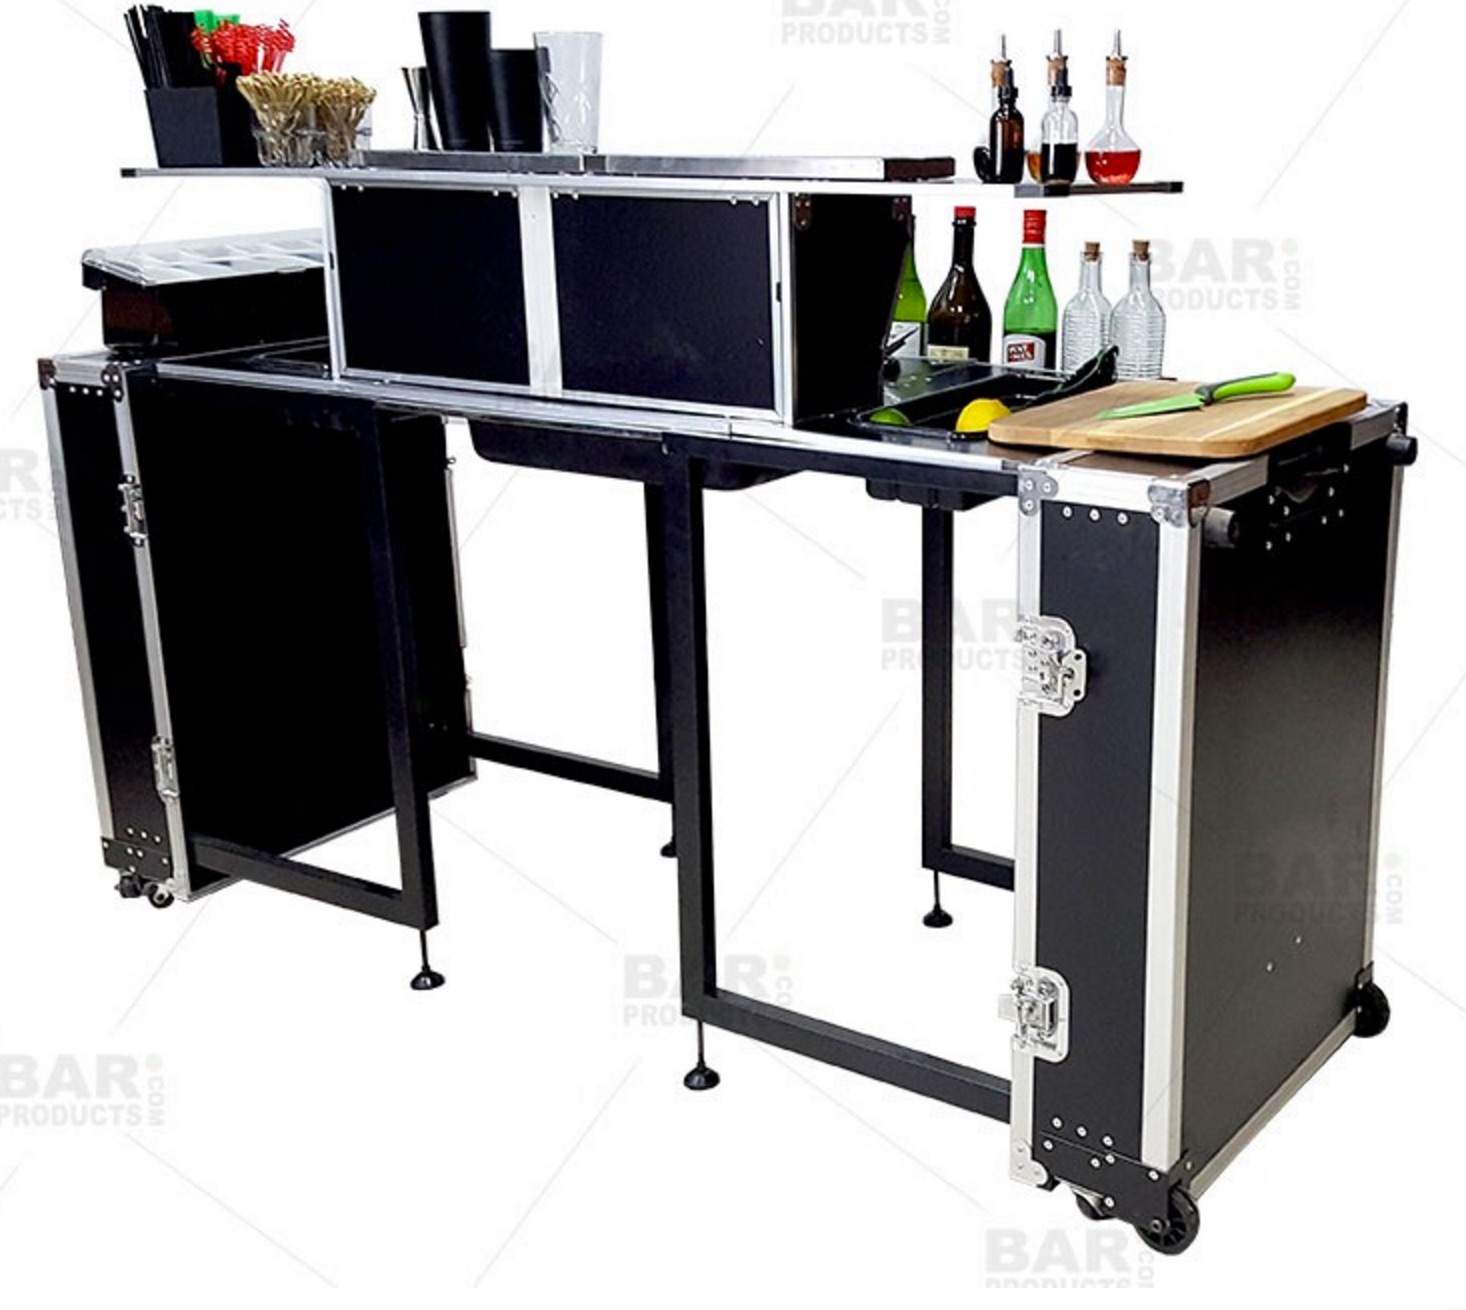 wine black stainless of unfinished bottle liquor wall then home mounted table horrible large steel rack a full also cabinet racks pianobar expandable bar barcabinet image holder portable size